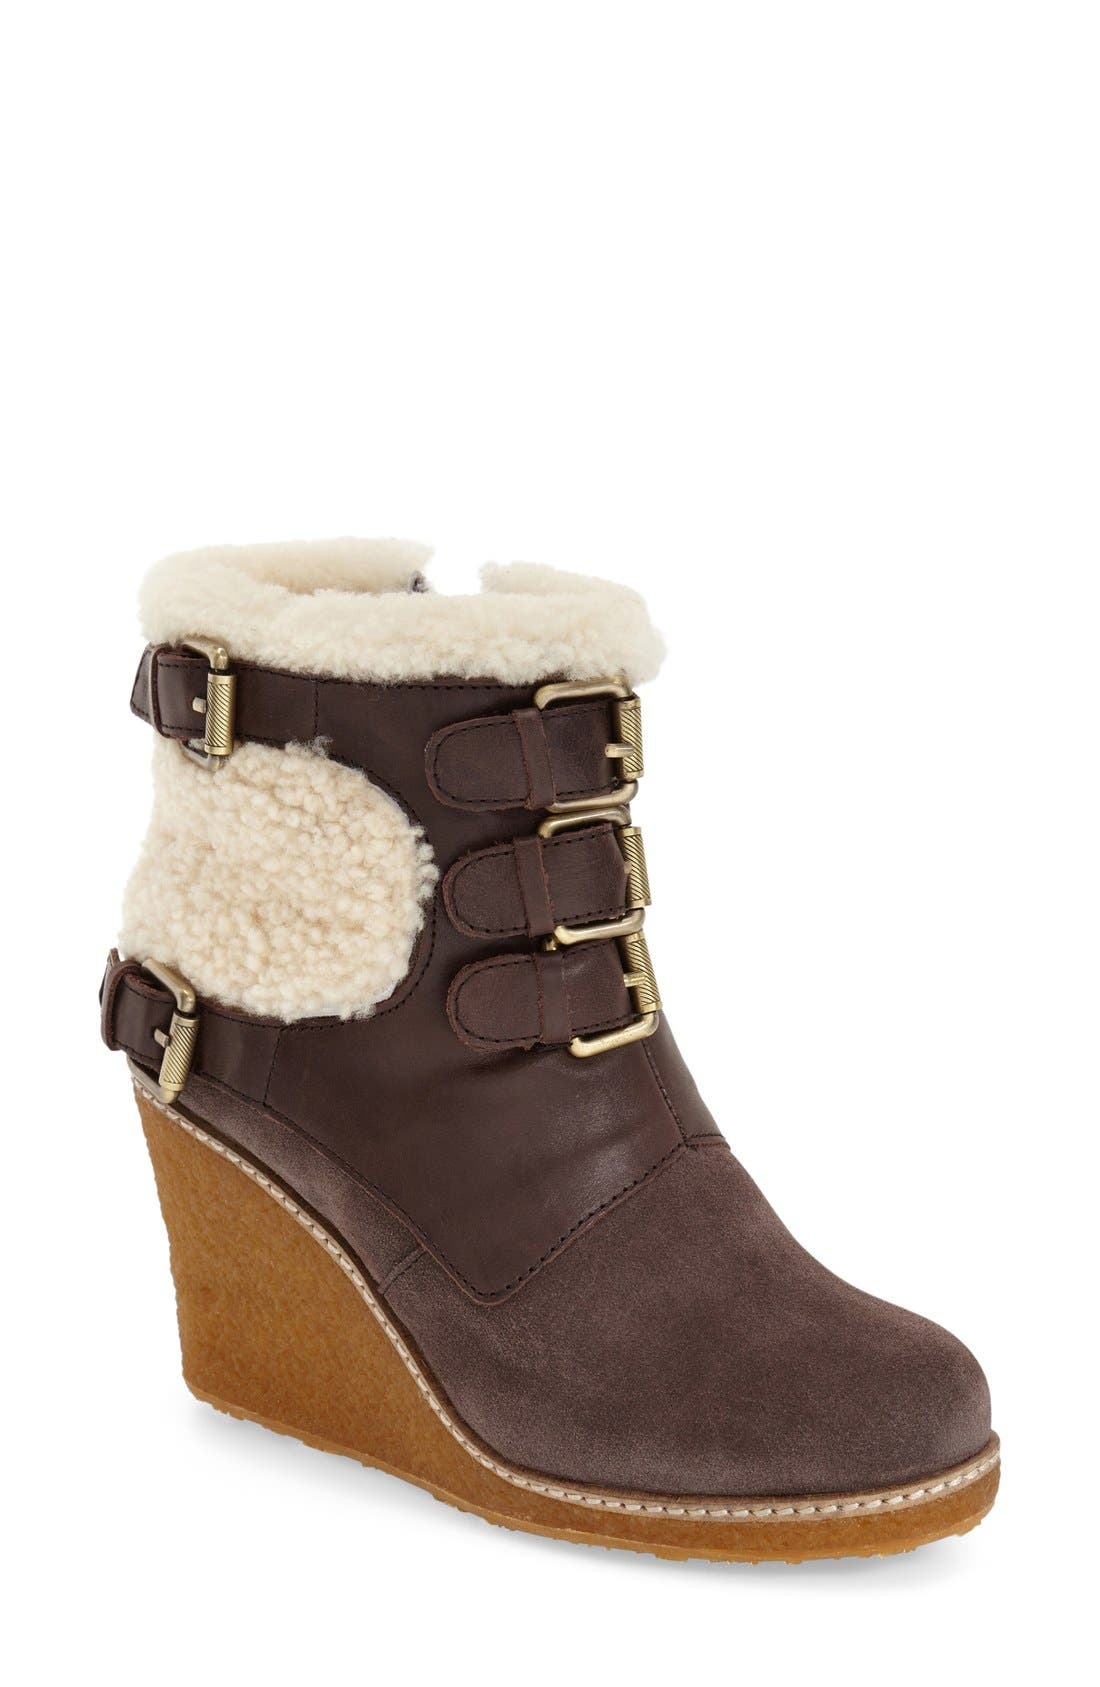 Main Image - Australia Luxe Collective 'Monk' Genuine Calf Hair & Shearling Boot (Women)